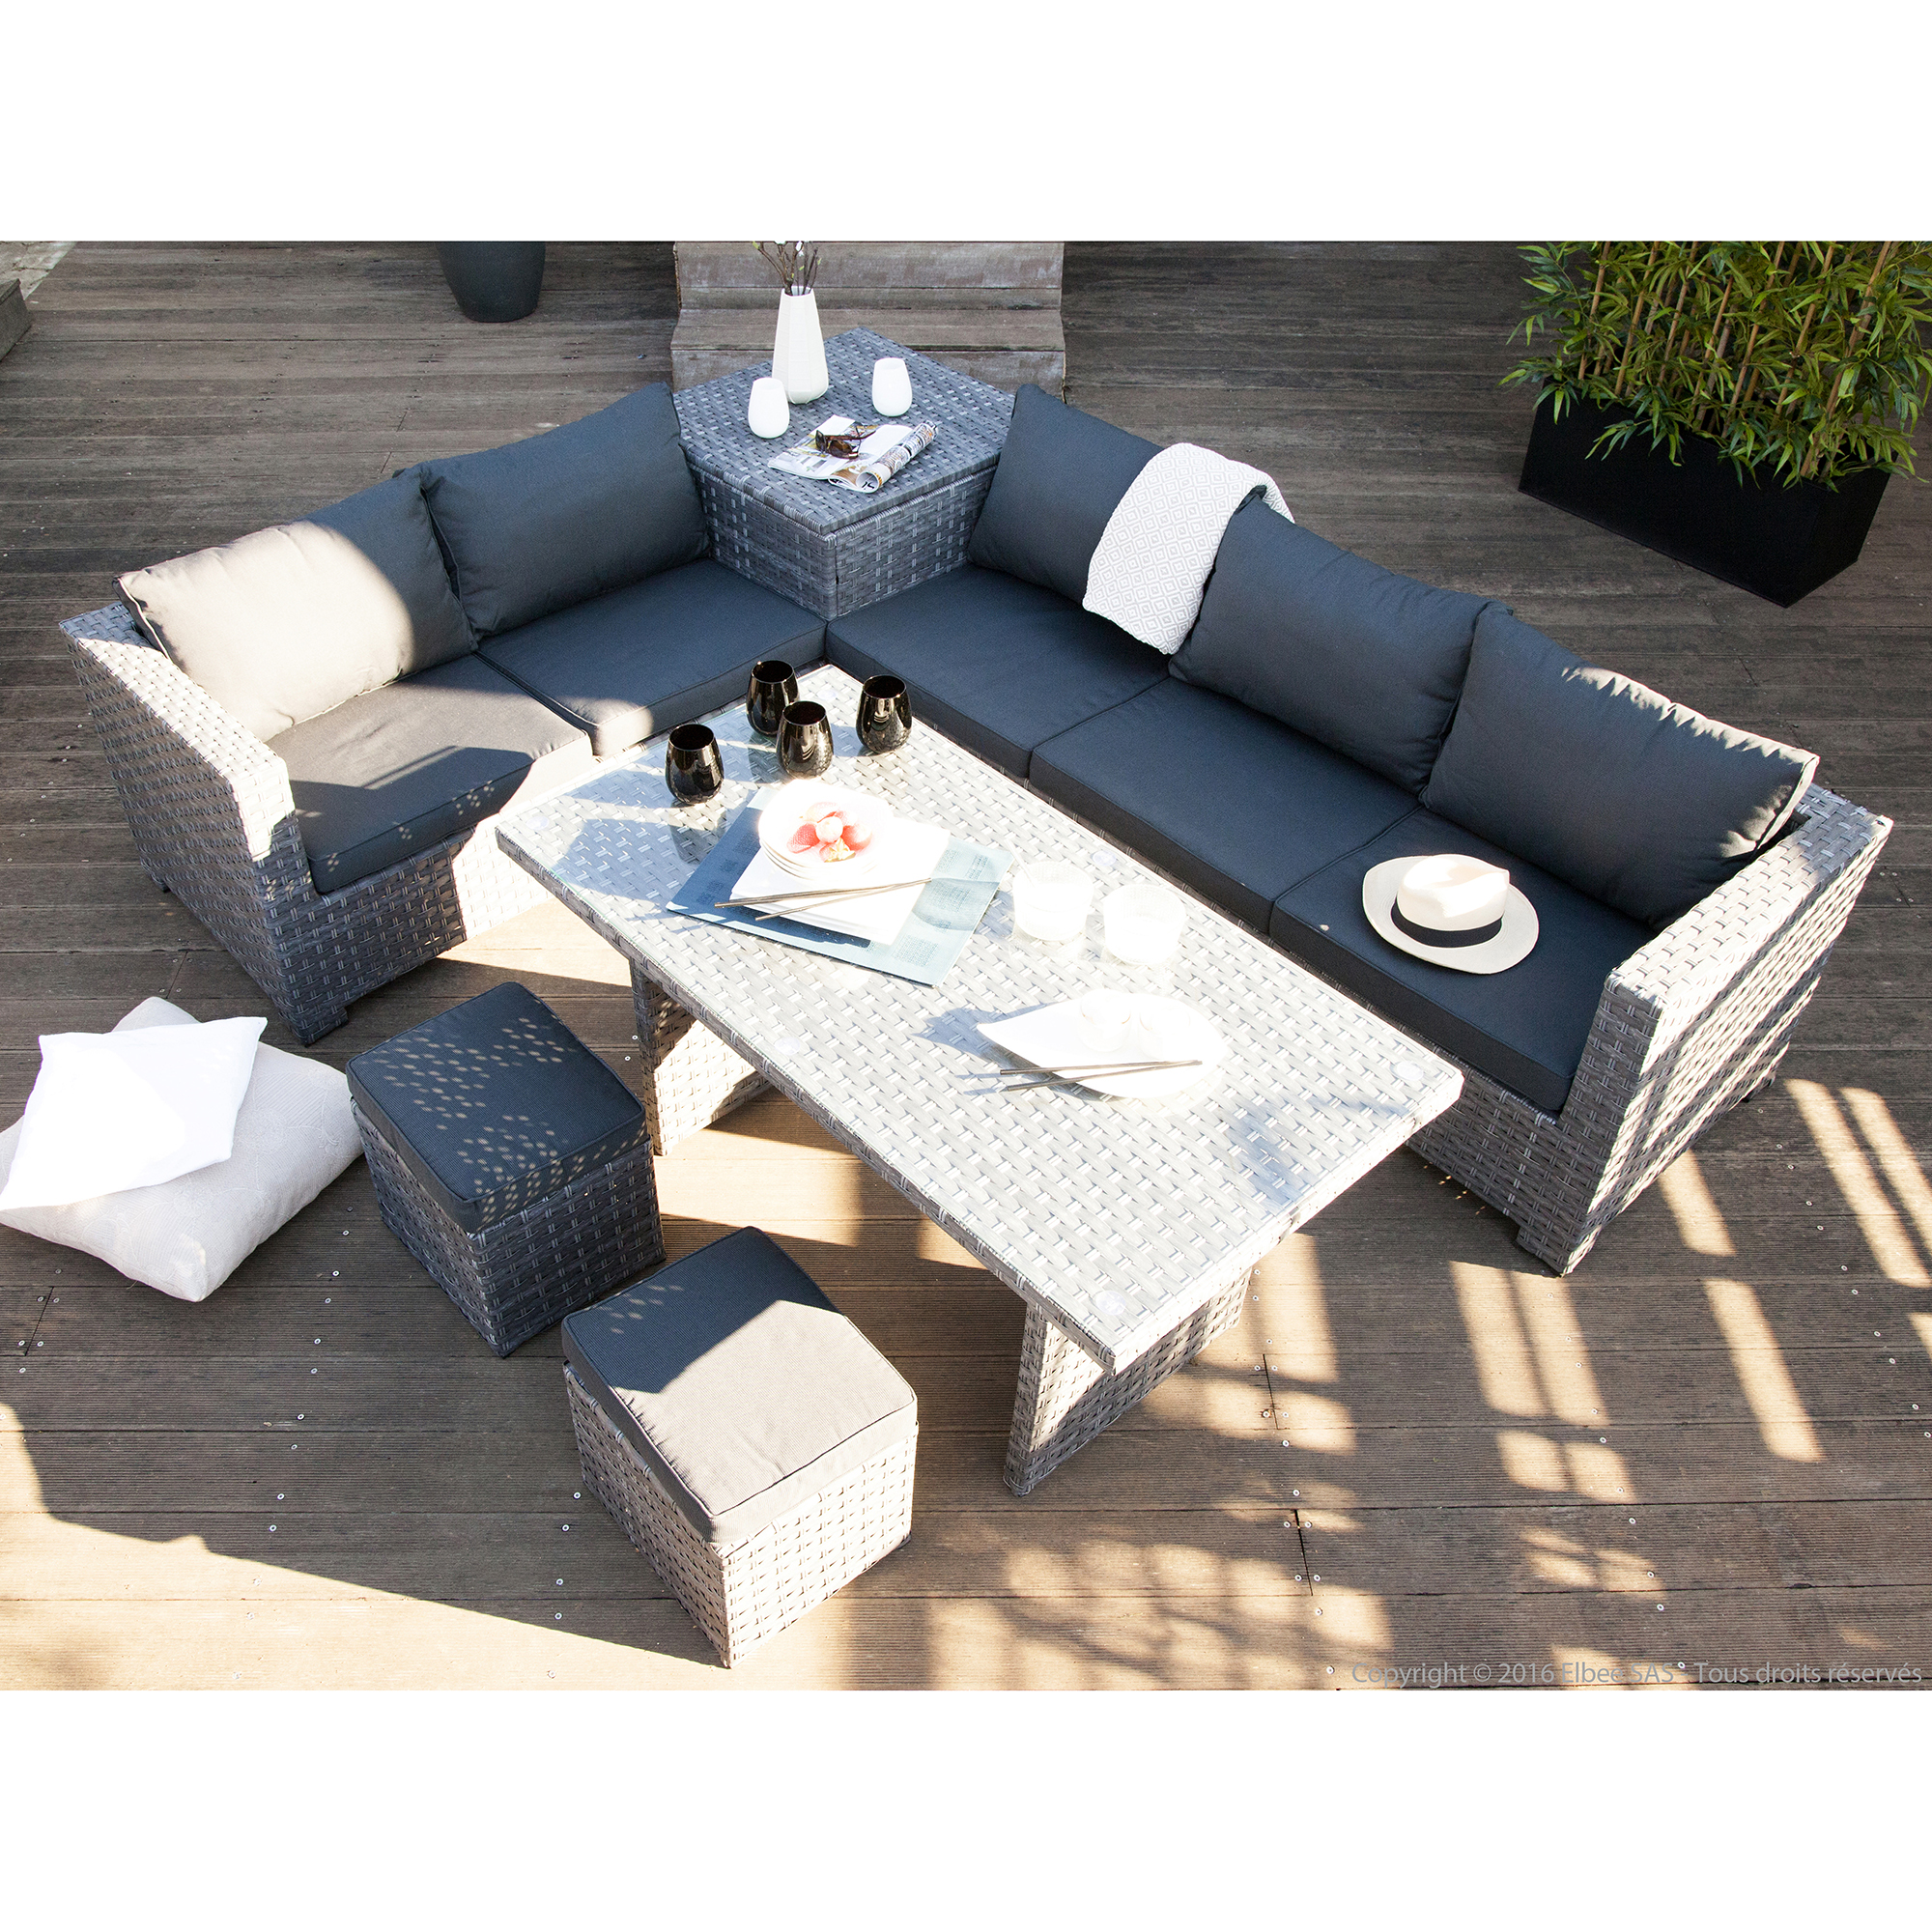 Salon de jardin table | Domino panda